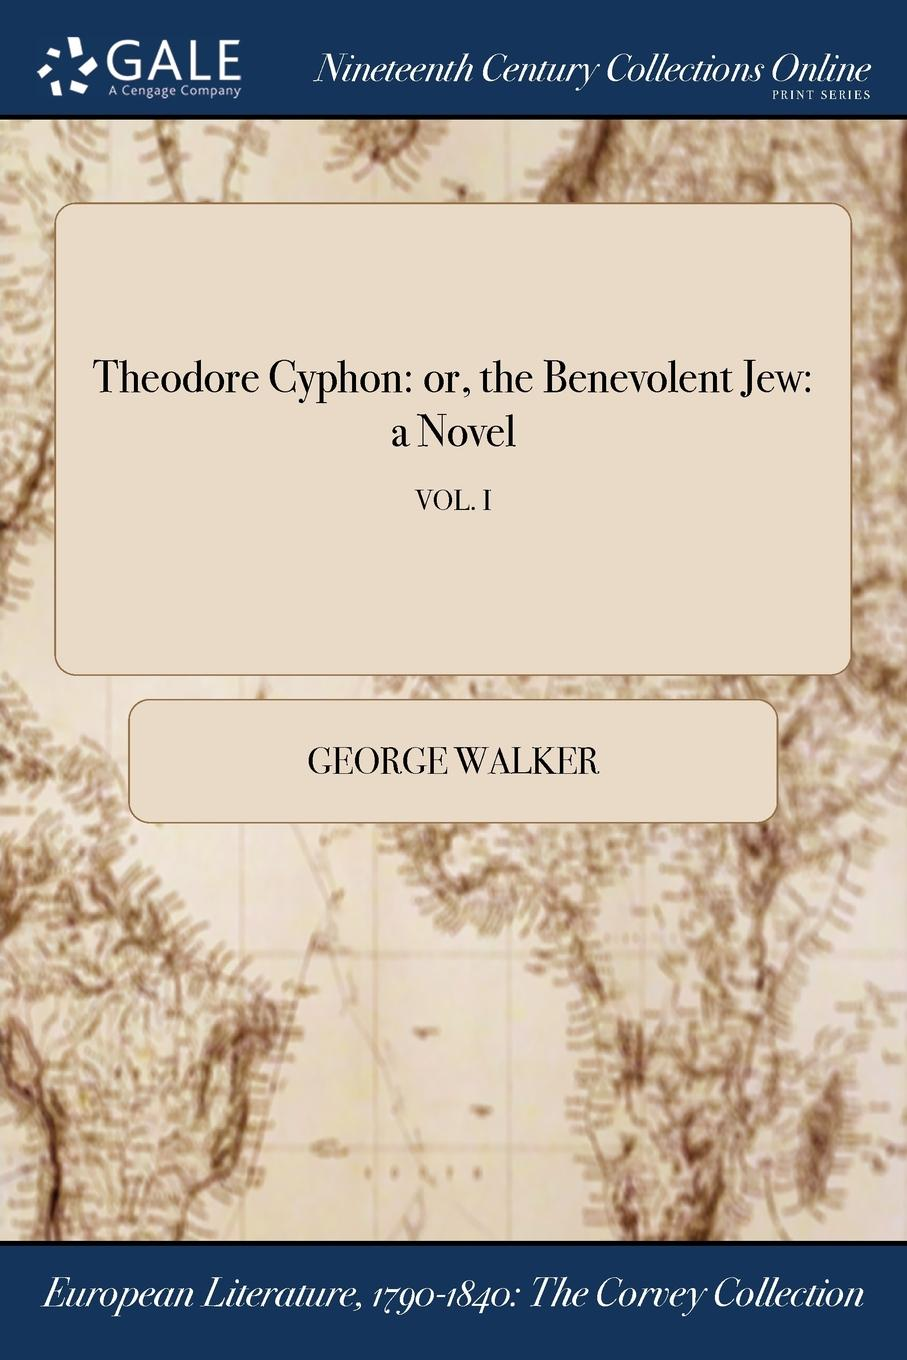 George Walker Theodore Cyphon. or, the Benevolent Jew: a Novel; VOL. I